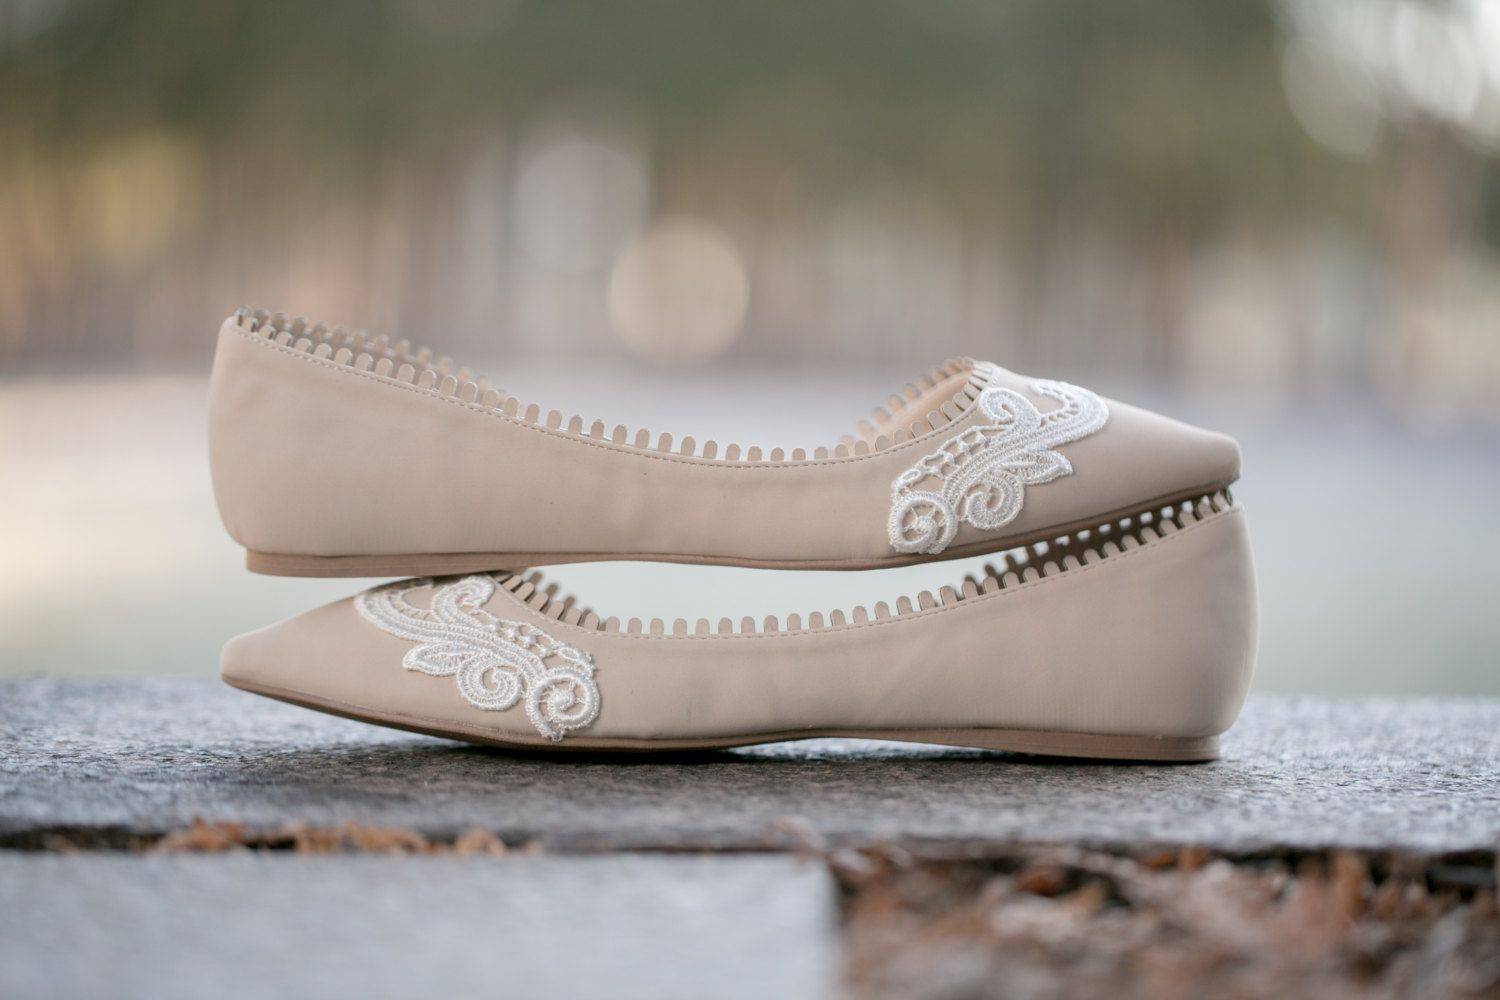 Comfortable Low Heel Wedding Shoes: 34 Cute + Most Comfortable Wedding Shoes Ever